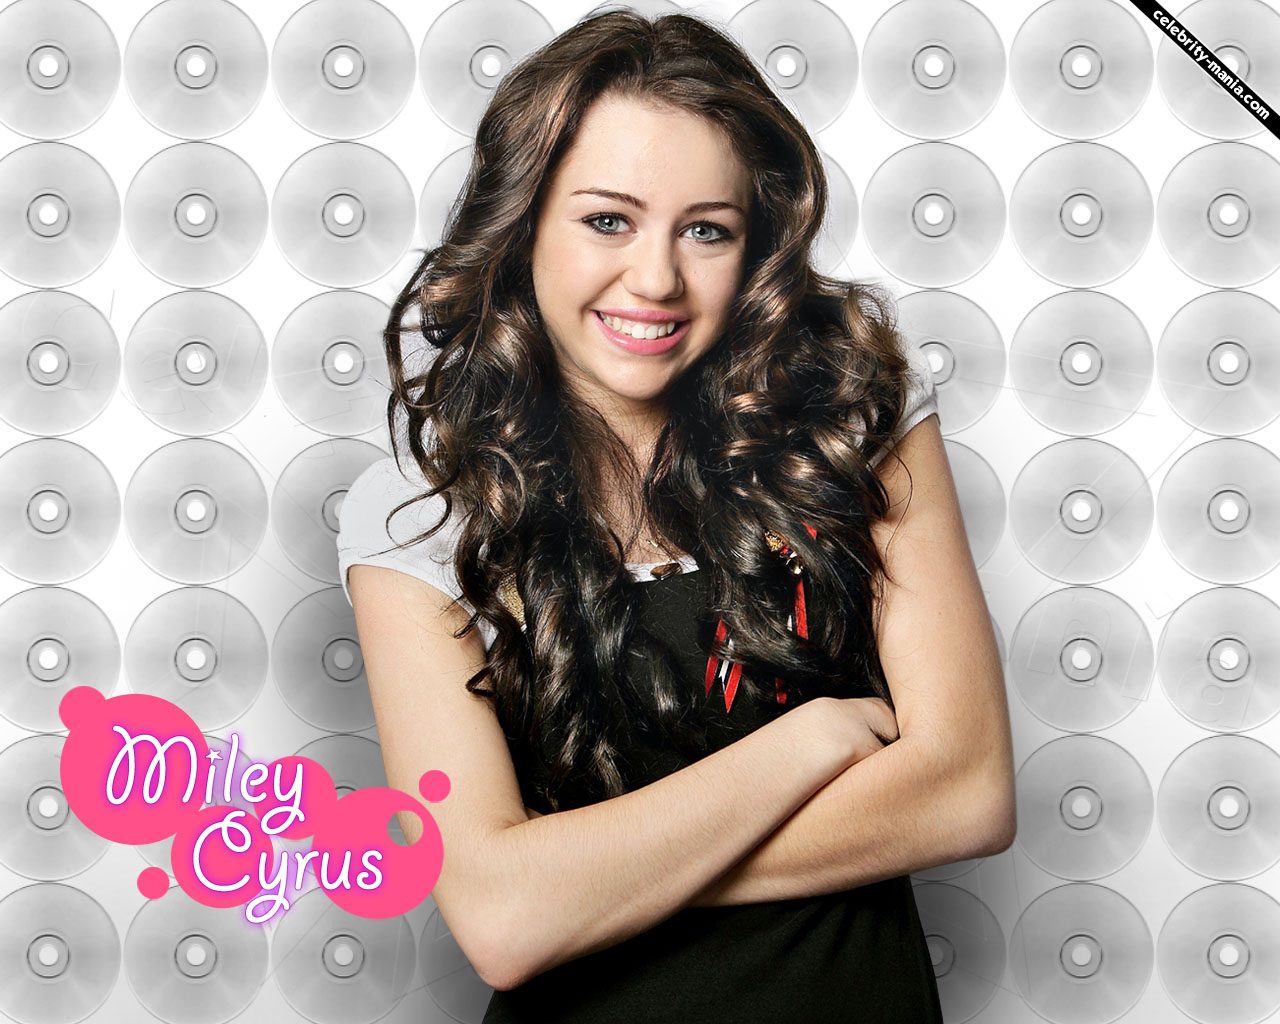 Tylerandkenzie Miley Cyrus Wallpapers-4944